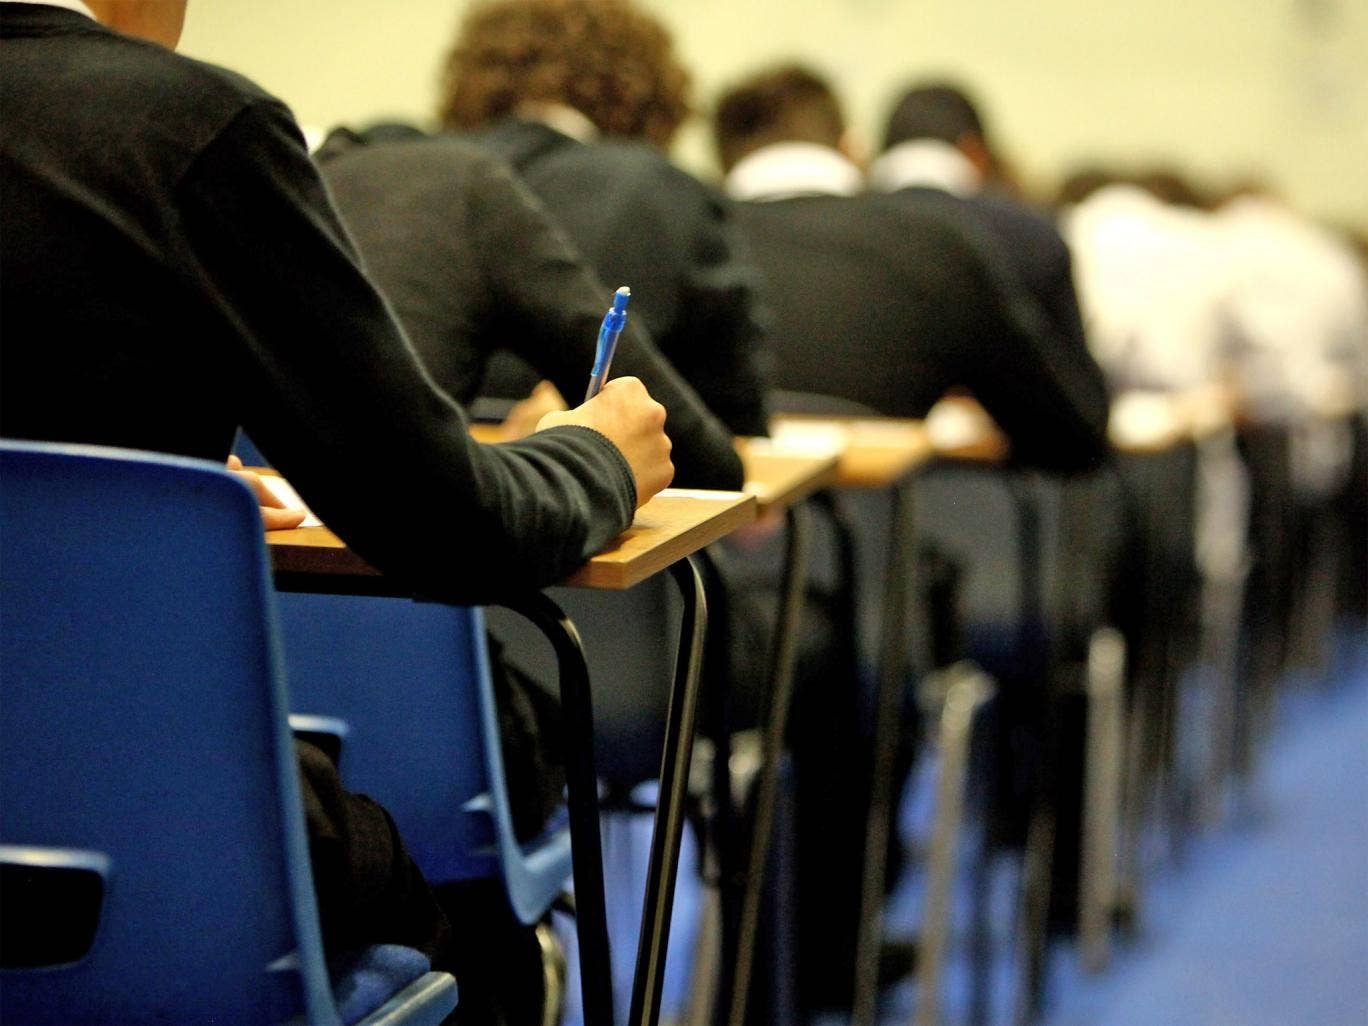 The report urges schools to provide annual reports to parents on their brightest pupils